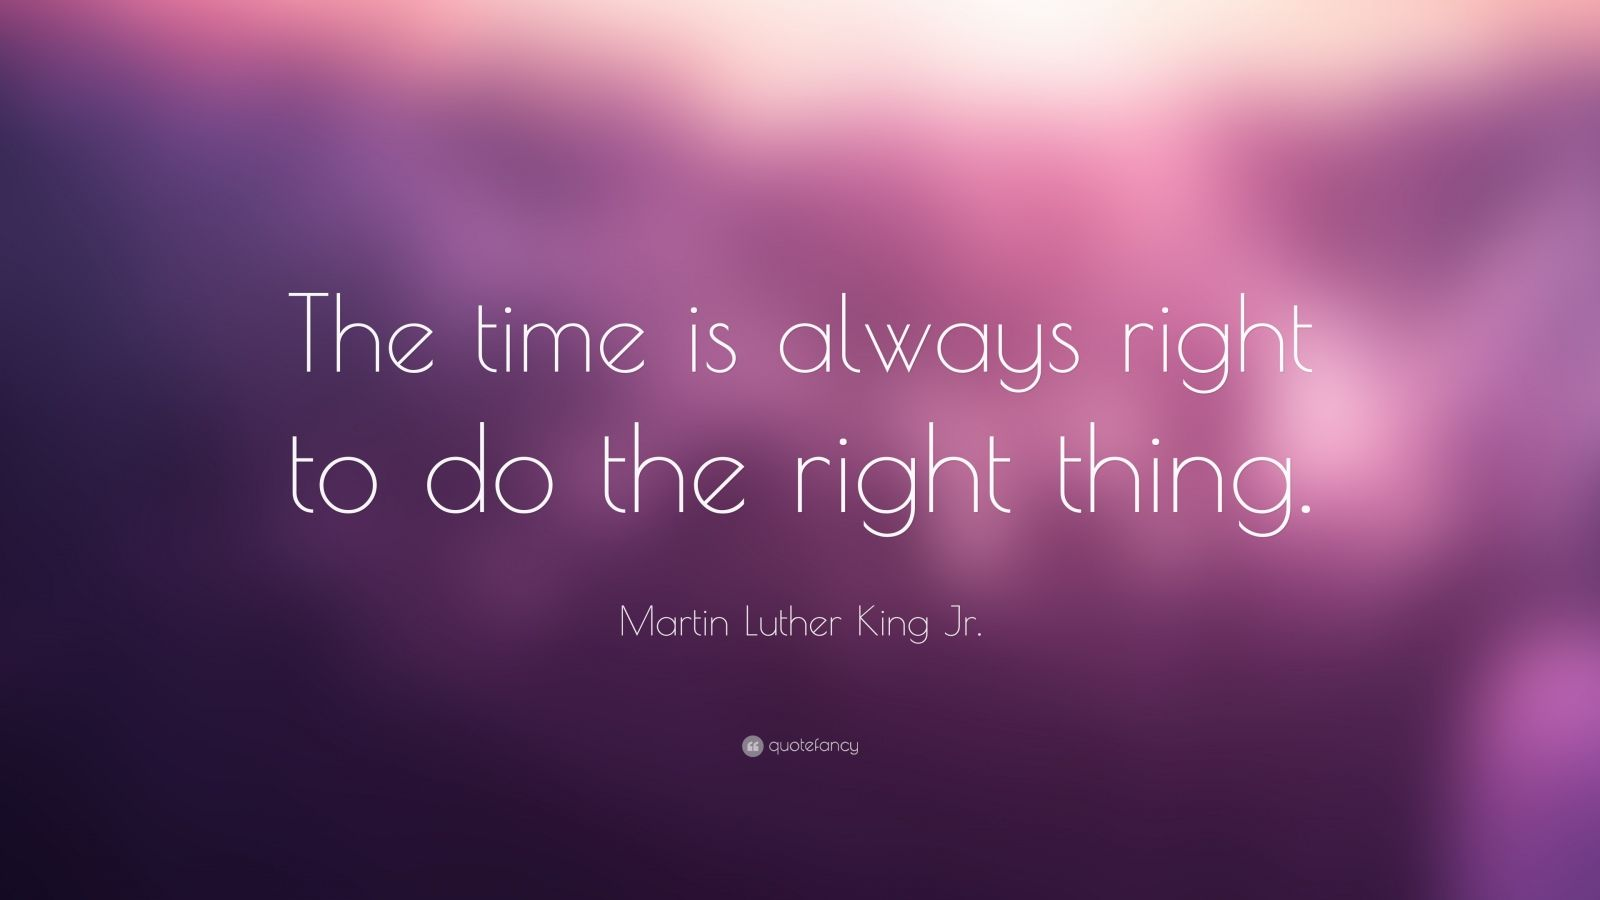 Martin Luther King Jr Quotes Wallpaper Attitude Quotes 40 Wallpapers Quotefancy